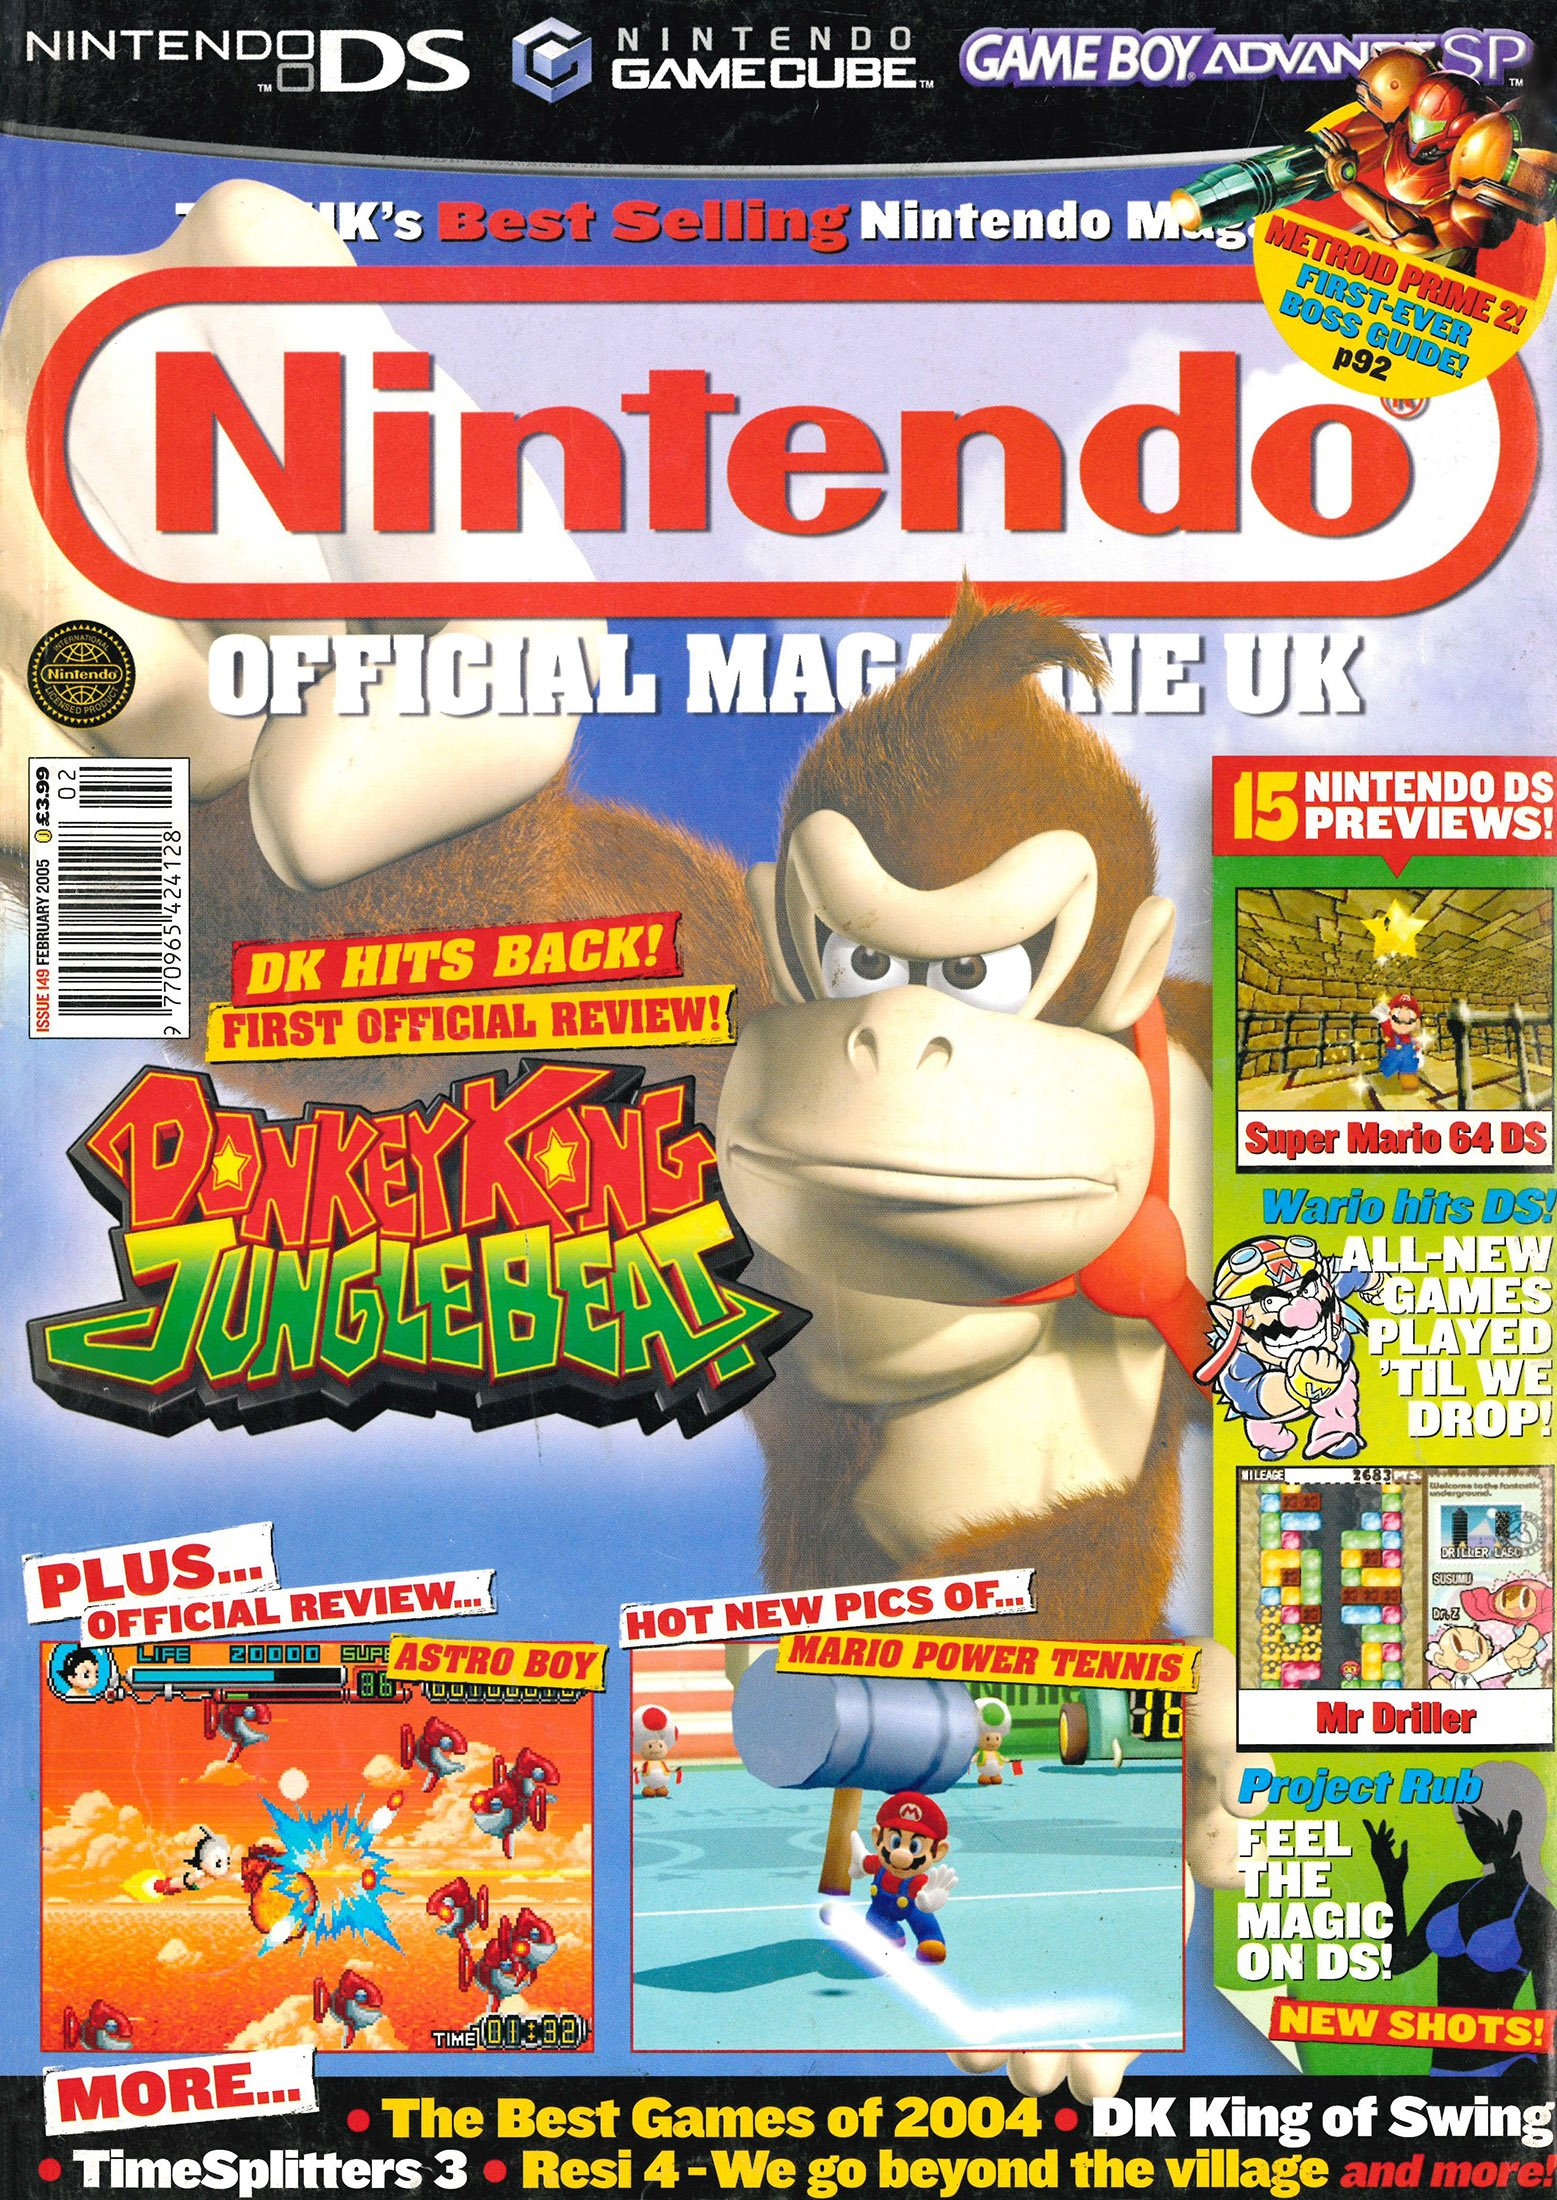 Nintendo Official Magazine 149 (February 2005)